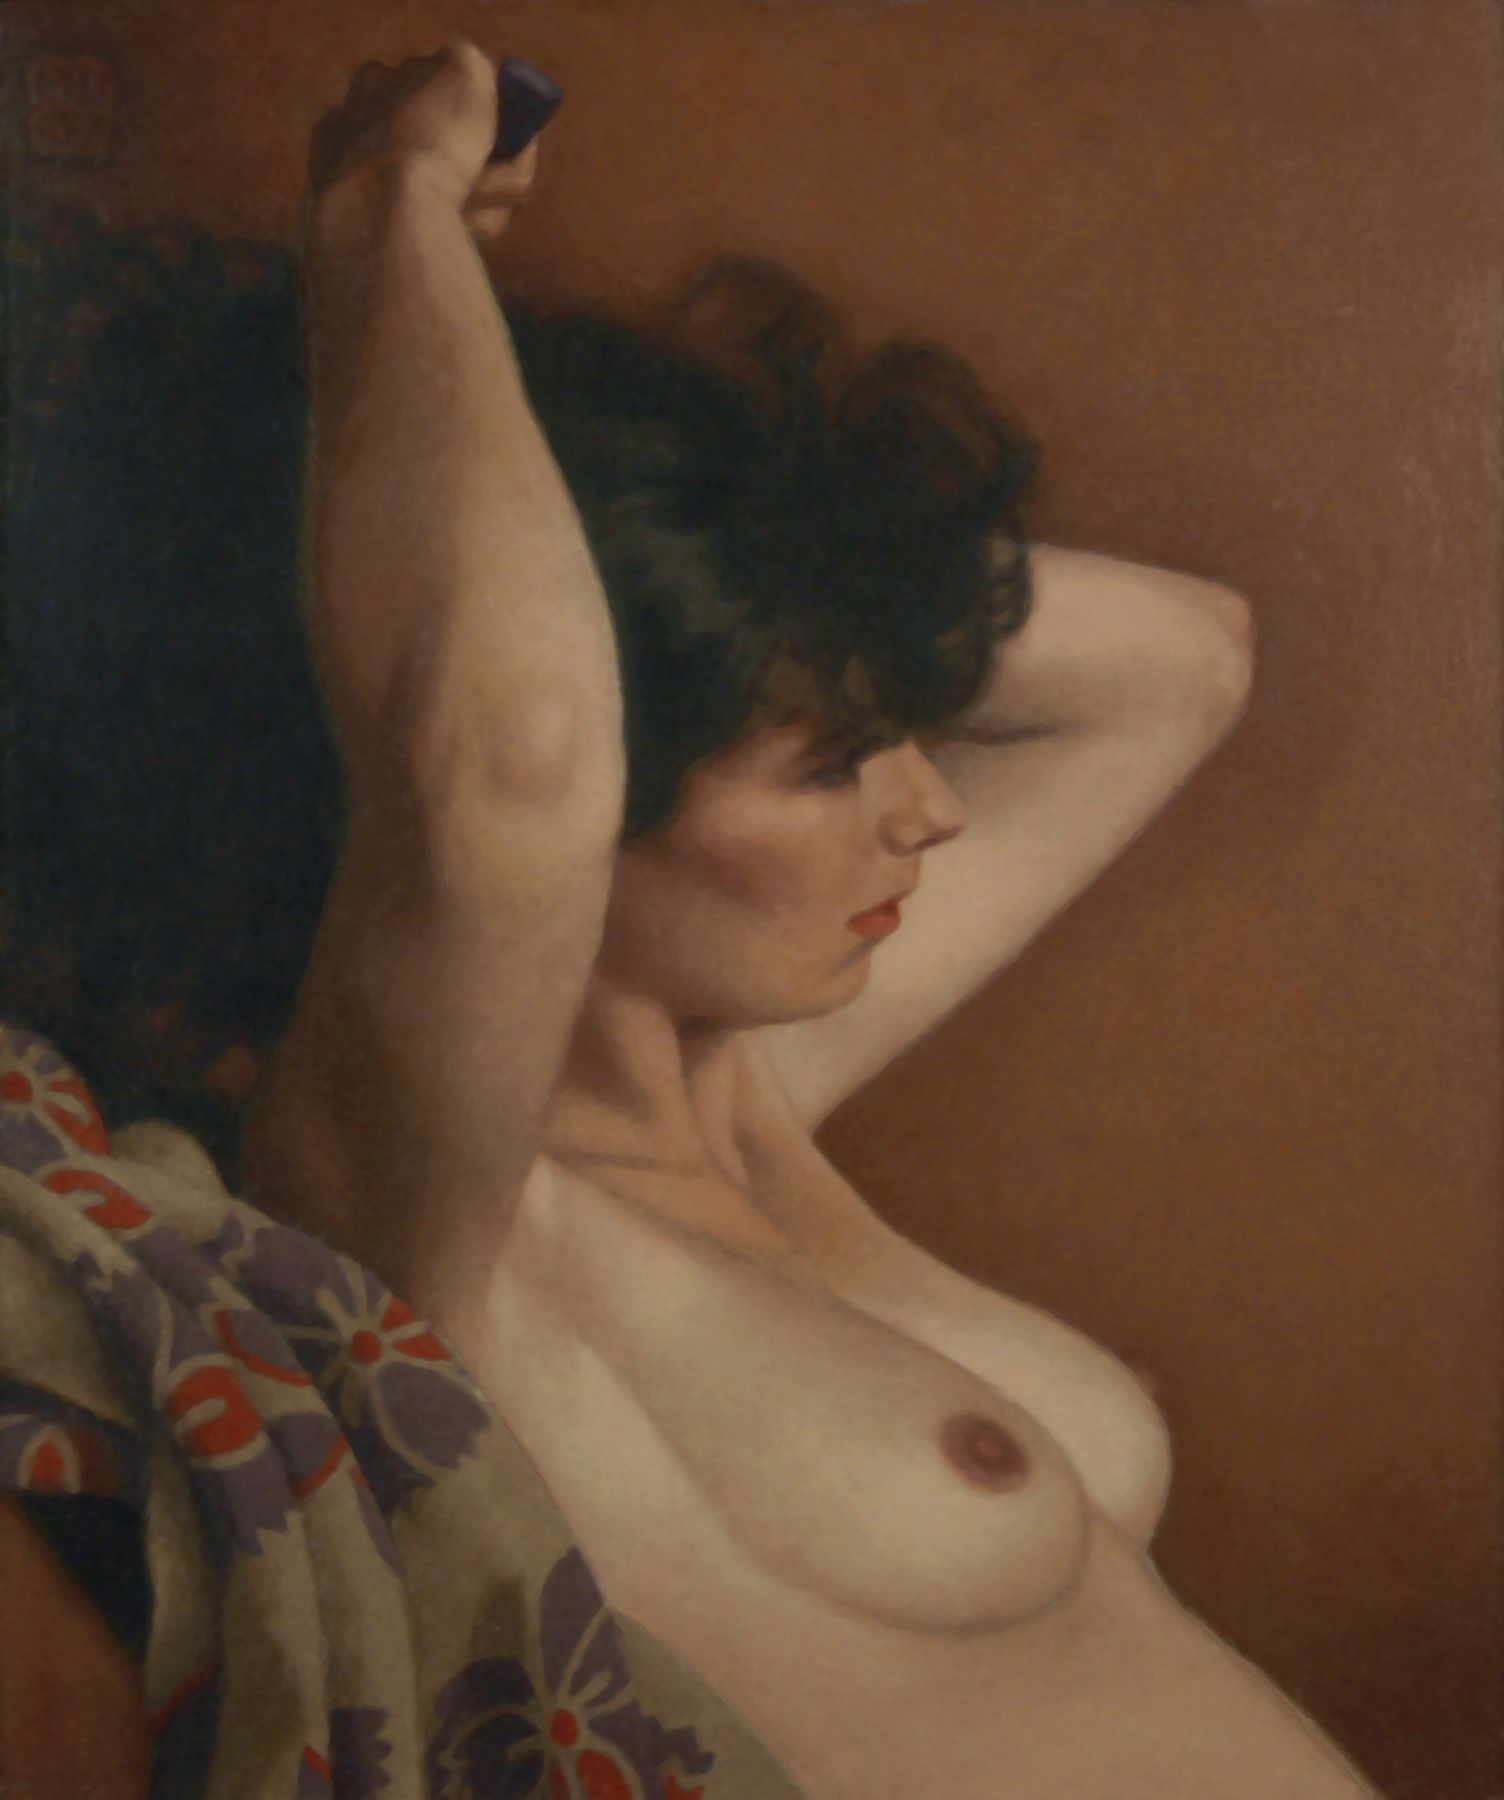 Michael Leonard, Cloud of Dark Hair, 2007, alkyd-oil on masonite, 19 x 16 inches